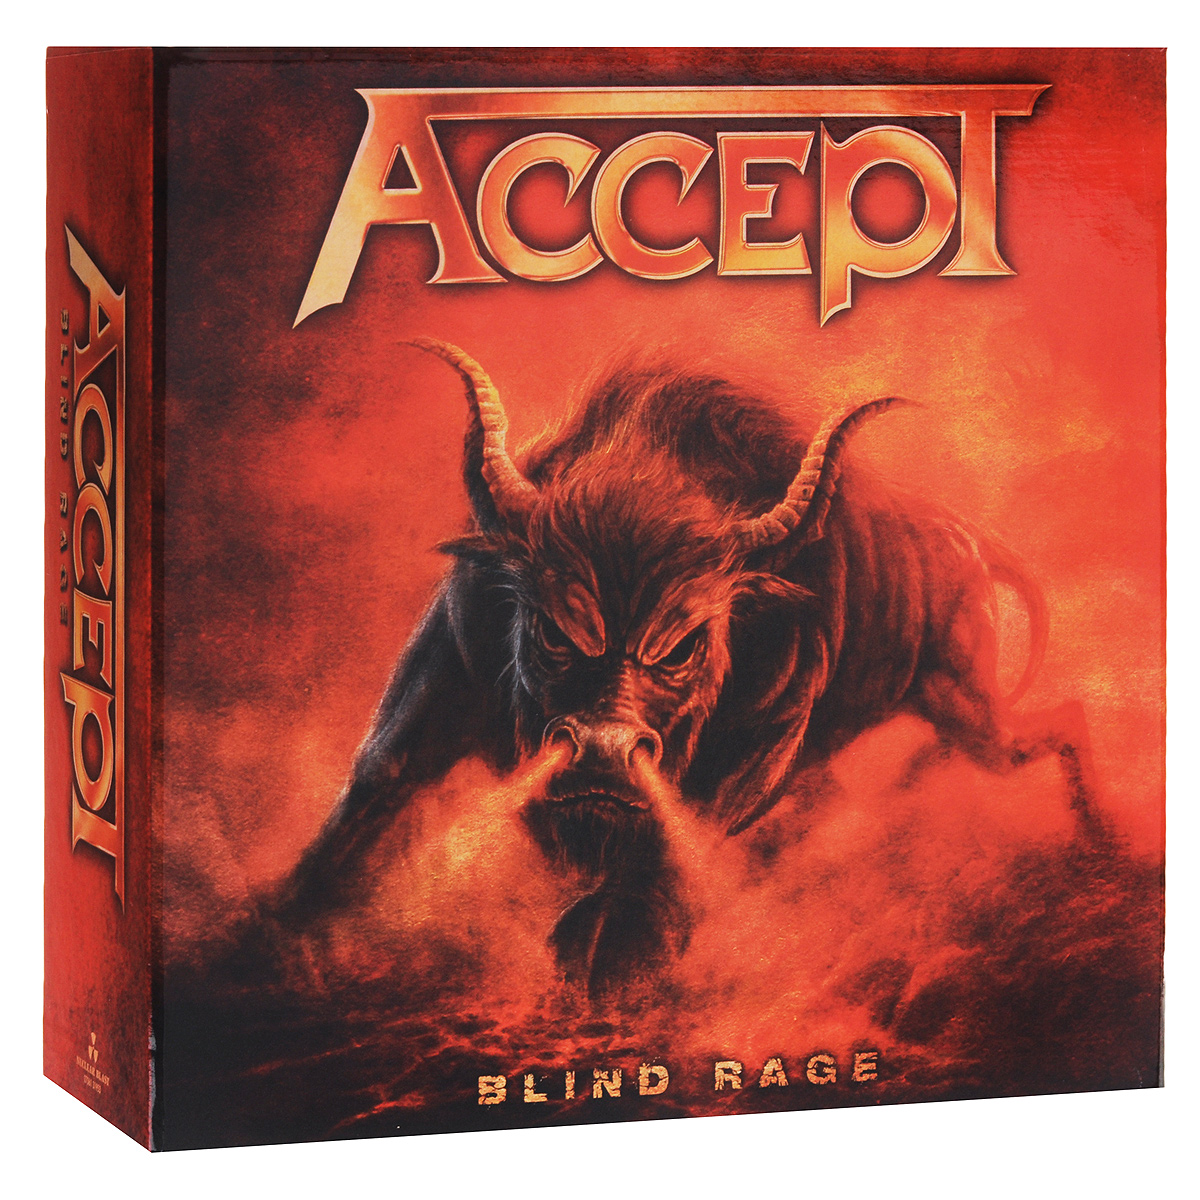 Accept Accept. Blind Rage. Limited Edition (CD +  Blu-ray + DVD + 2 LP) new mf8 eitan s star icosaix radiolarian puzzle magic cube black and primary limited edition very challenging welcome to buy